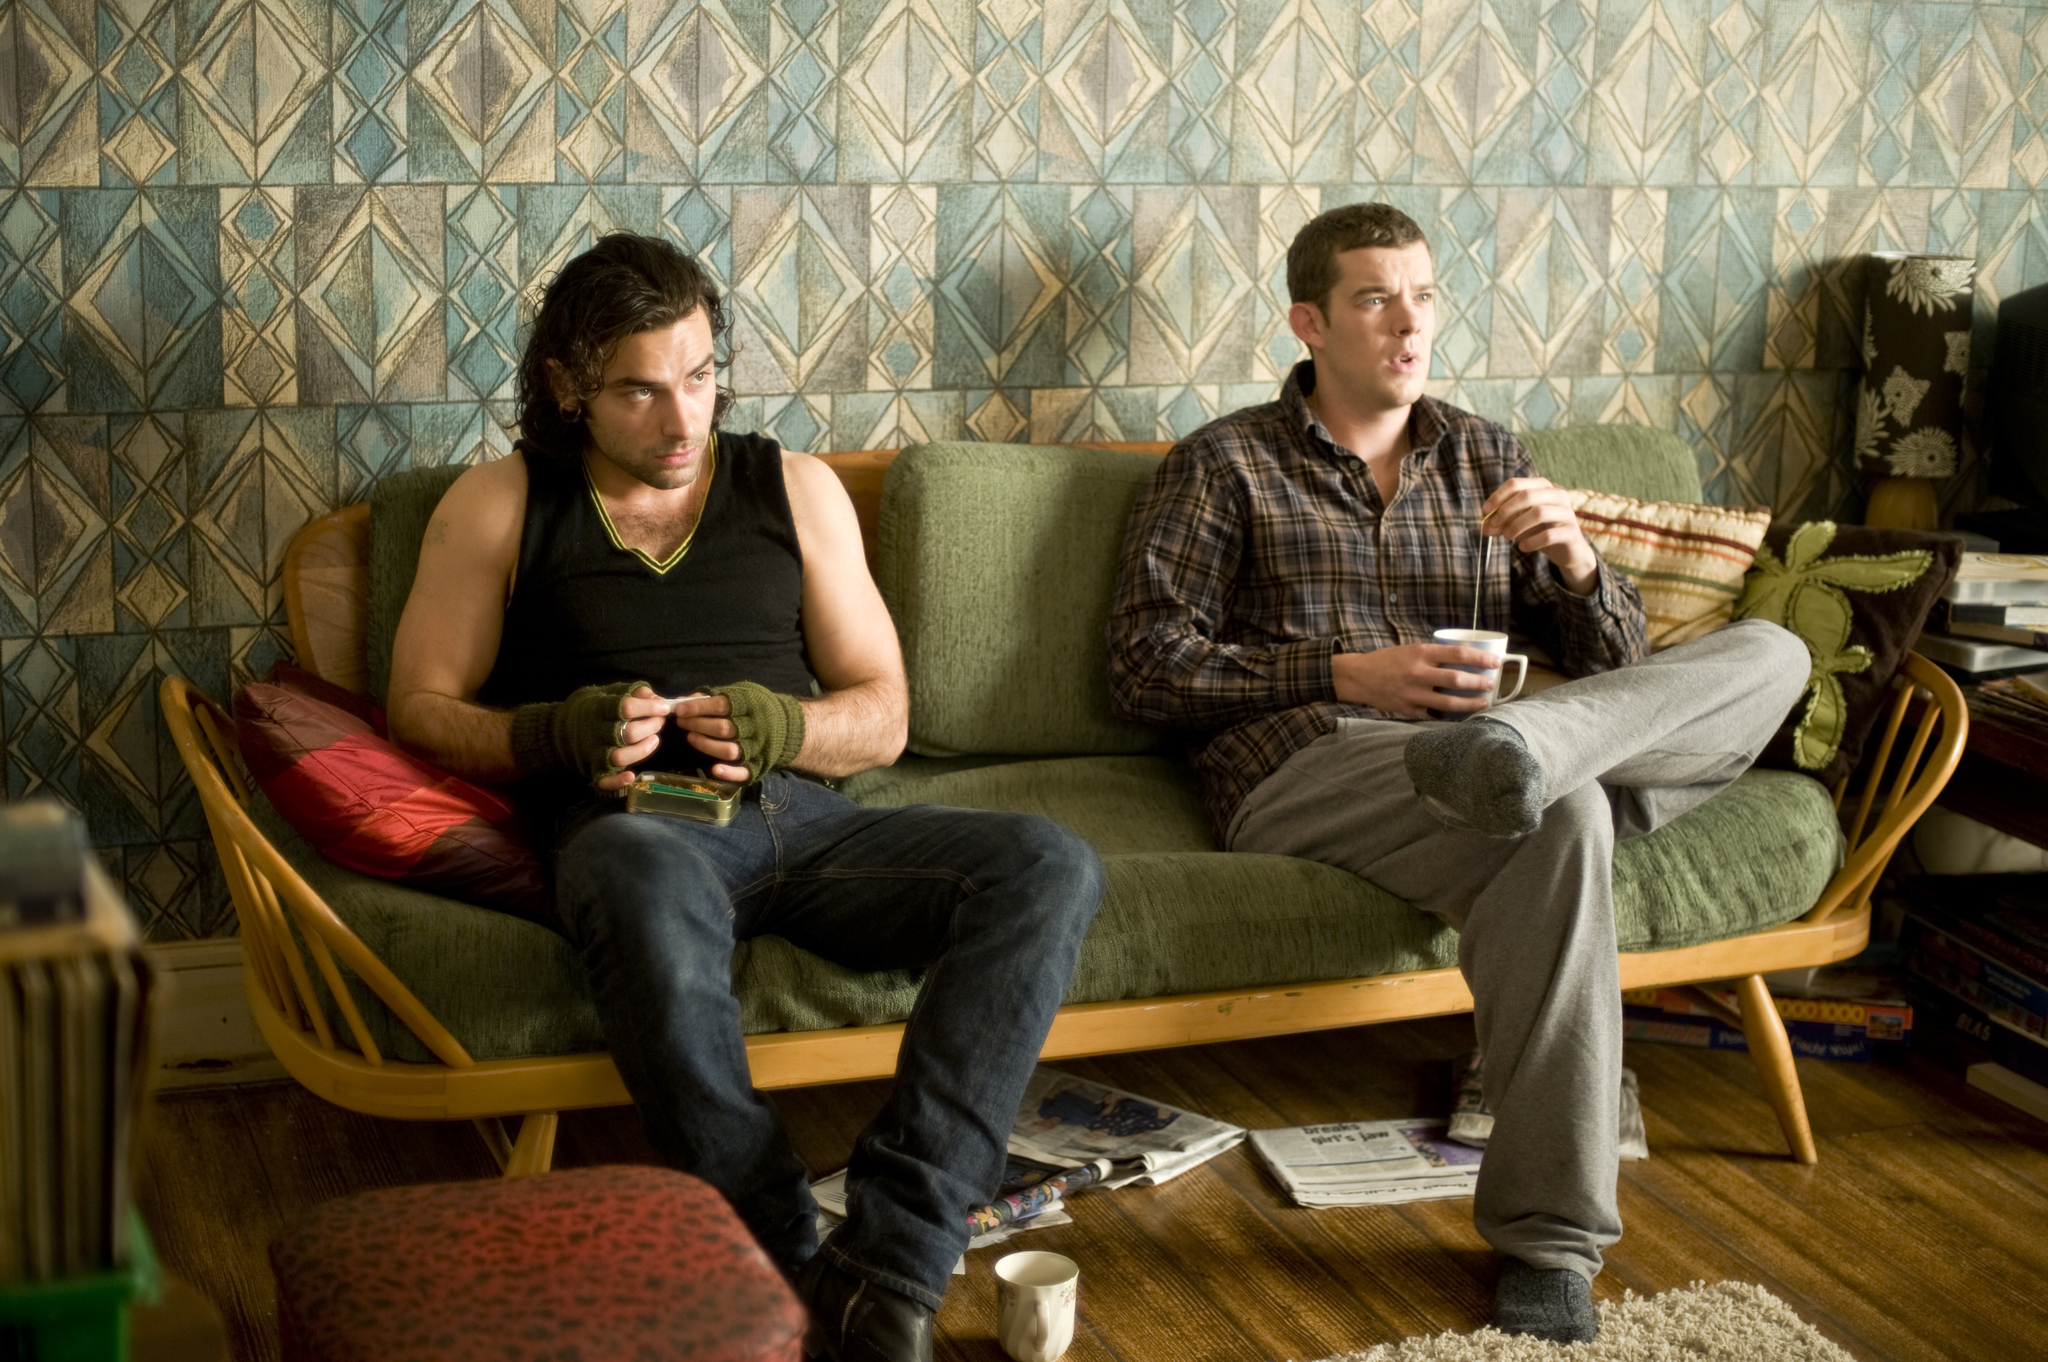 Still of Russell Tovey and Aidan Turner in Being Human (2008) photo #502406